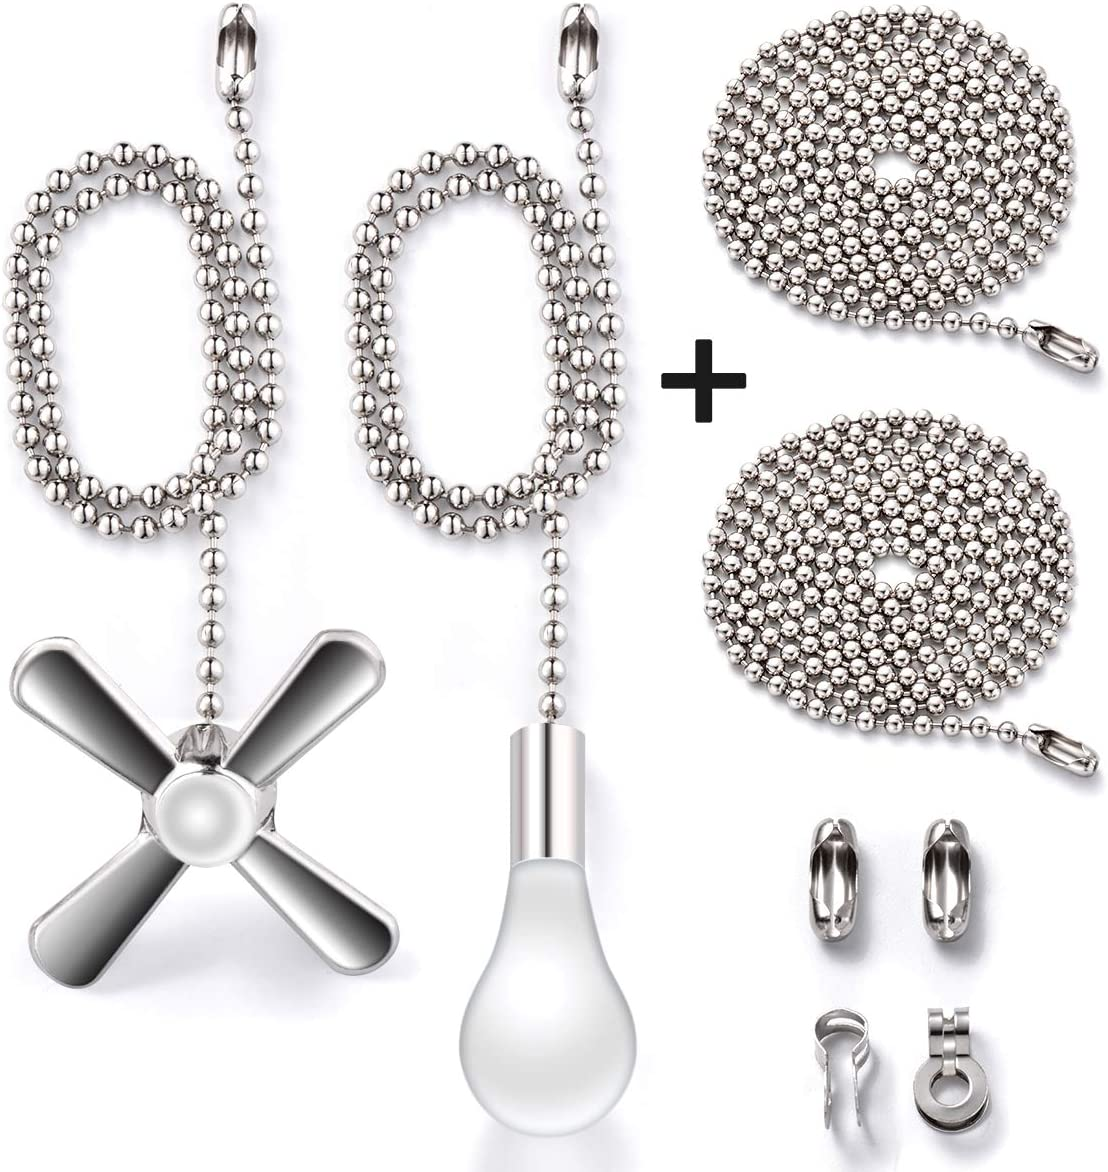 Fan Pull Chain with 35.4 inches Extension, Kinghouse 2 pcs 13.6 inches Copper Beaded Ball Fan Pull Chain Set including Beaded and Pull Loop Connectors, Christmas Holiday Gift Set: Kitchen & Dining